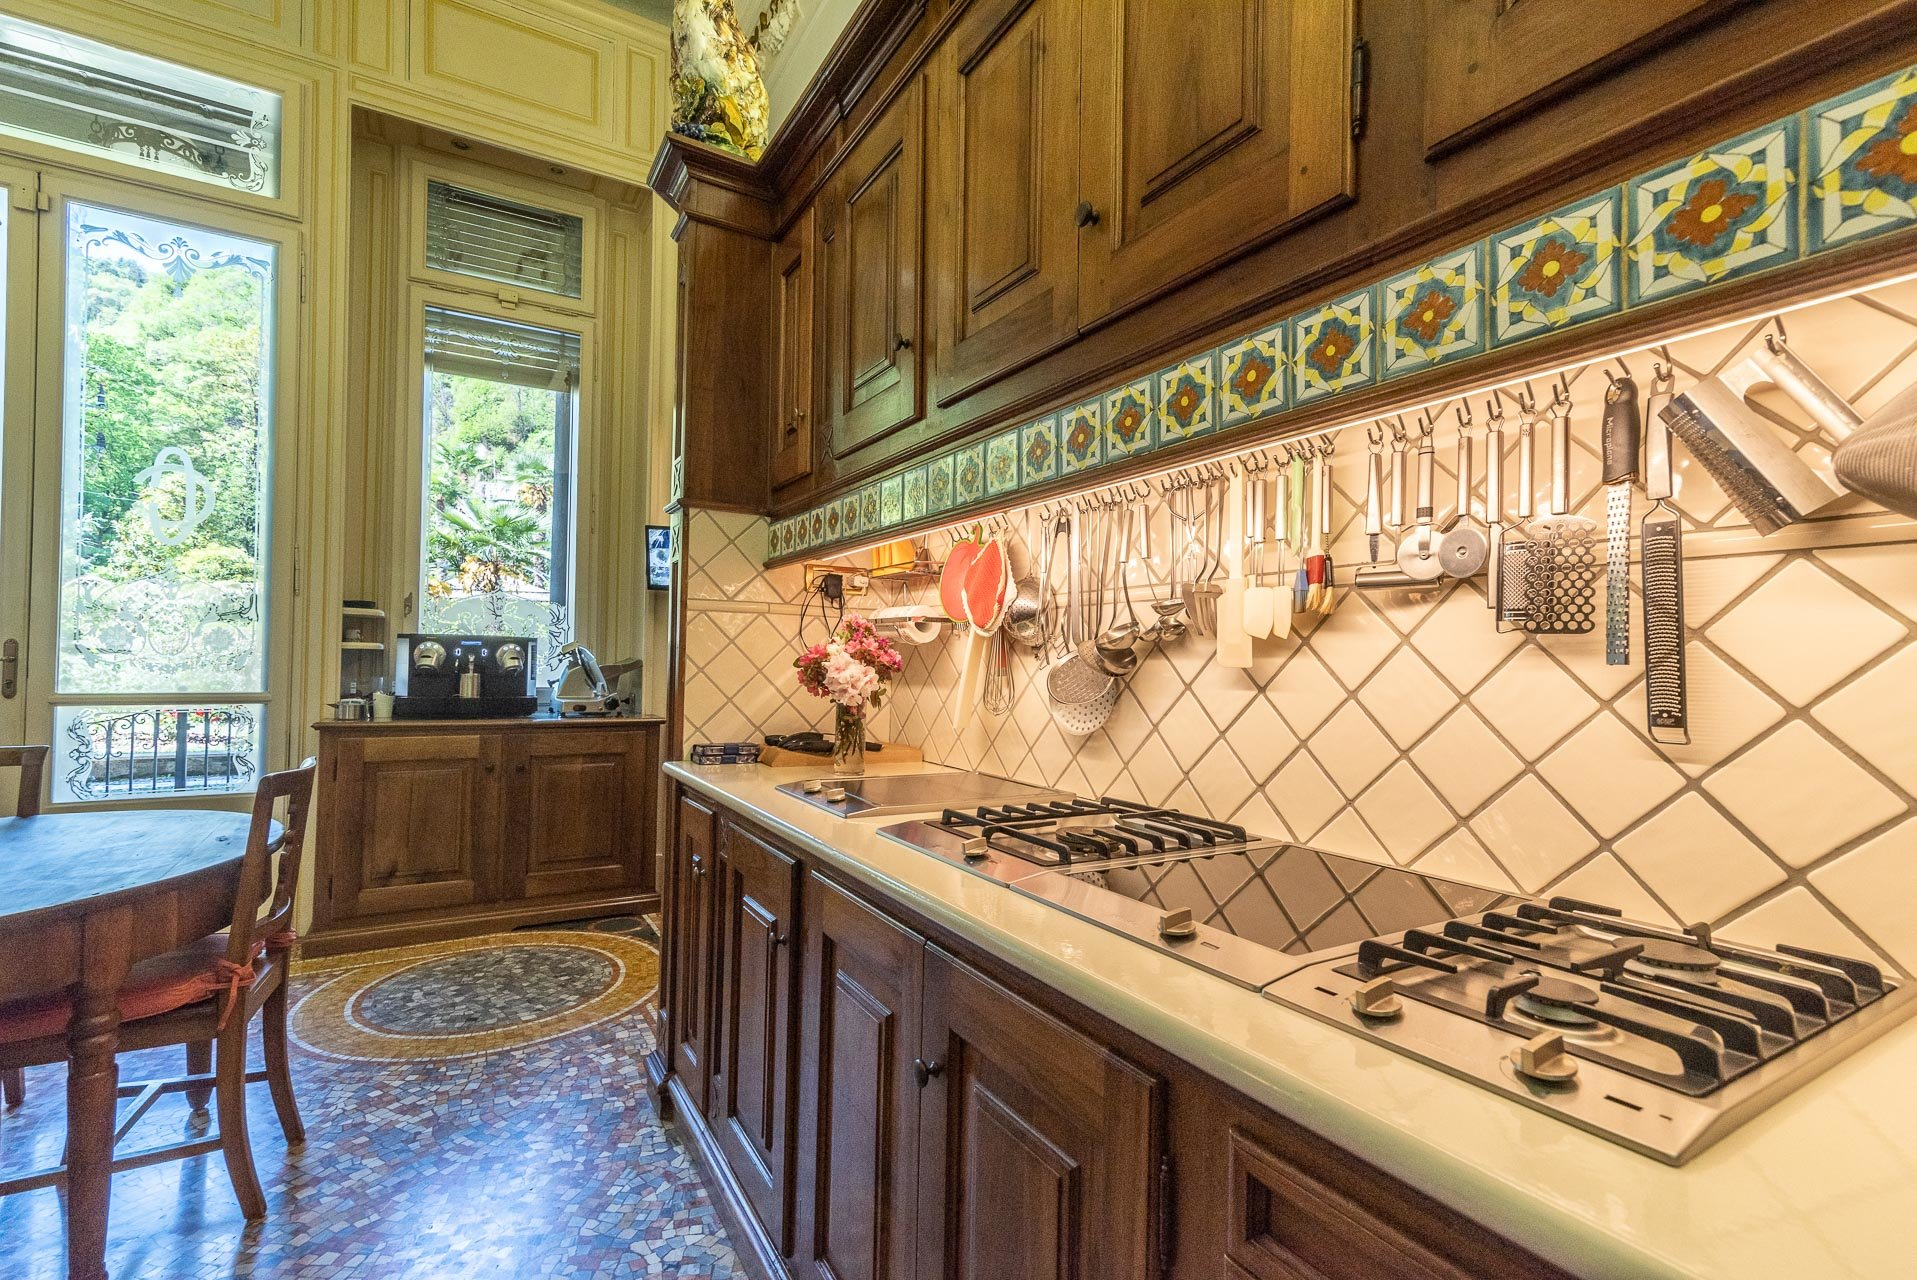 Luxurious apartment for sale in a villa in Stresa - fitted kitchen